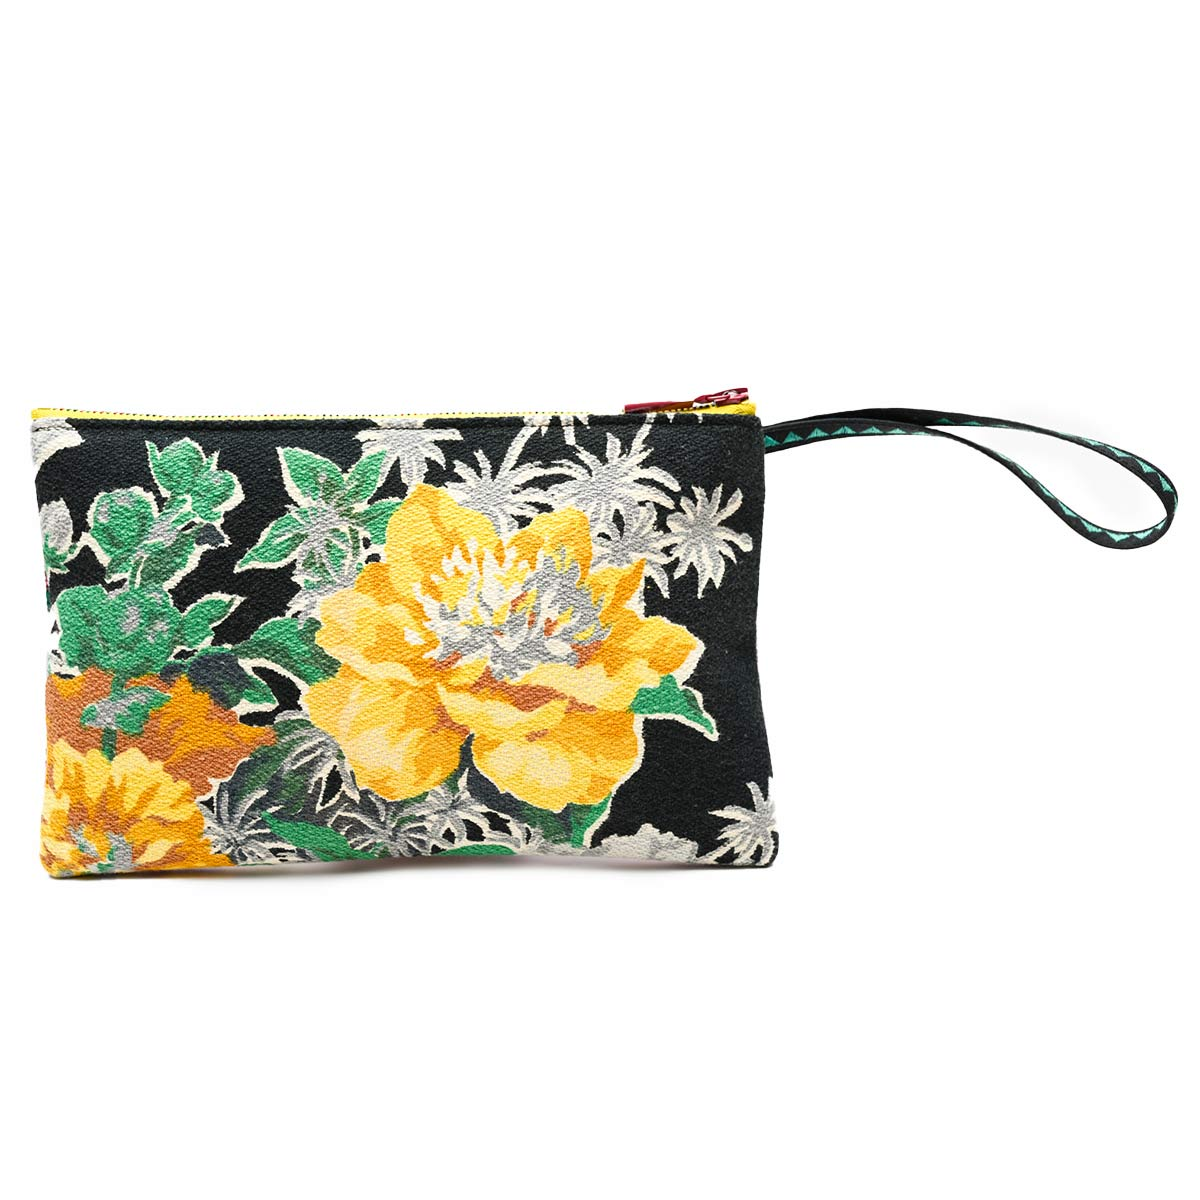 clutch bag combination floral on black and gray